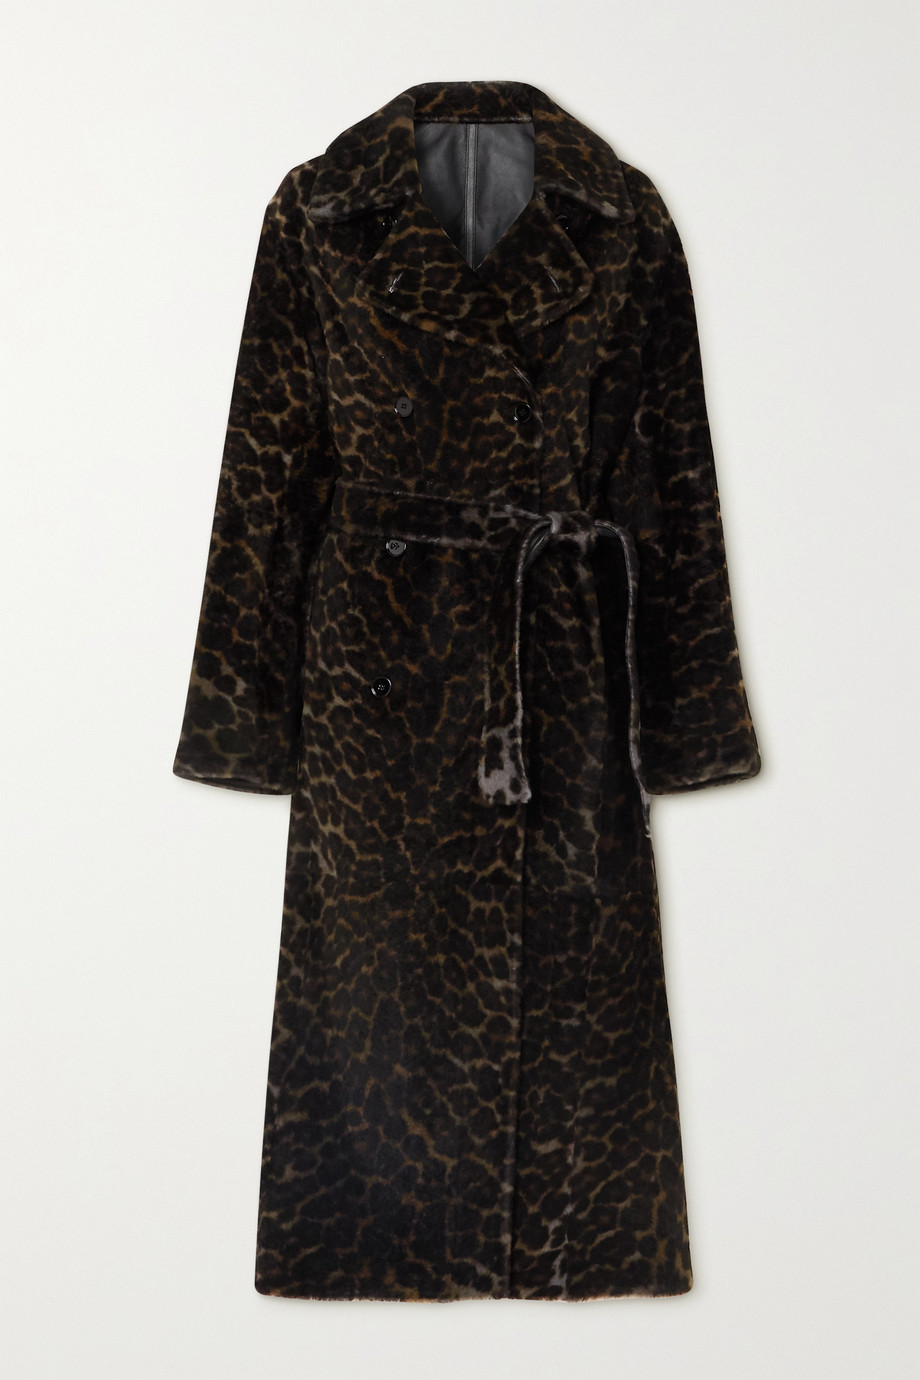 YVES SALOMON Reversible leopard-print shearling coat